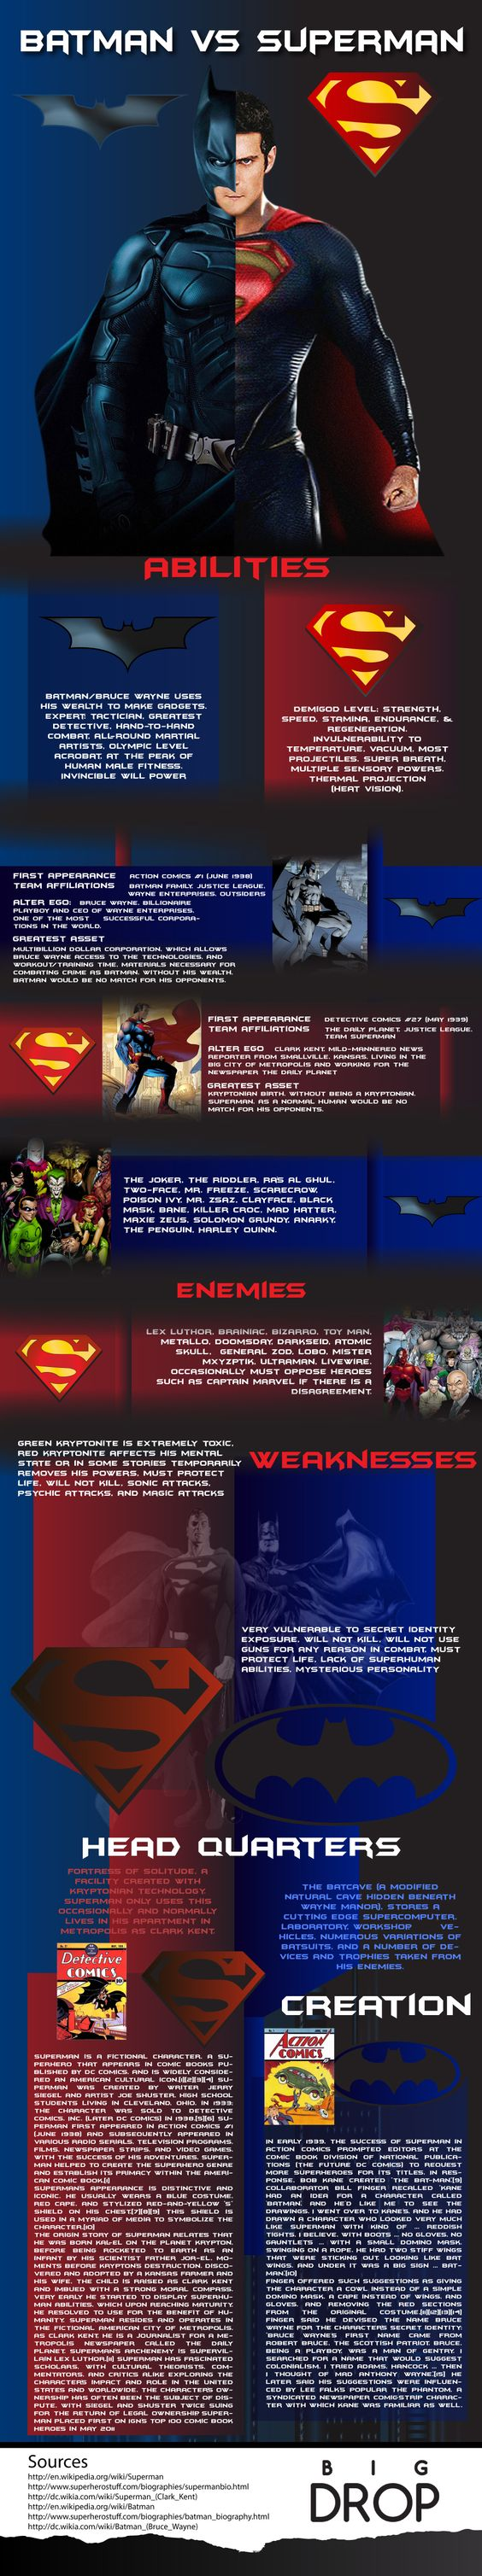 we compared the strengths and weaknesses abilities between we compared the strengths and weaknesses abilities between superman and batman